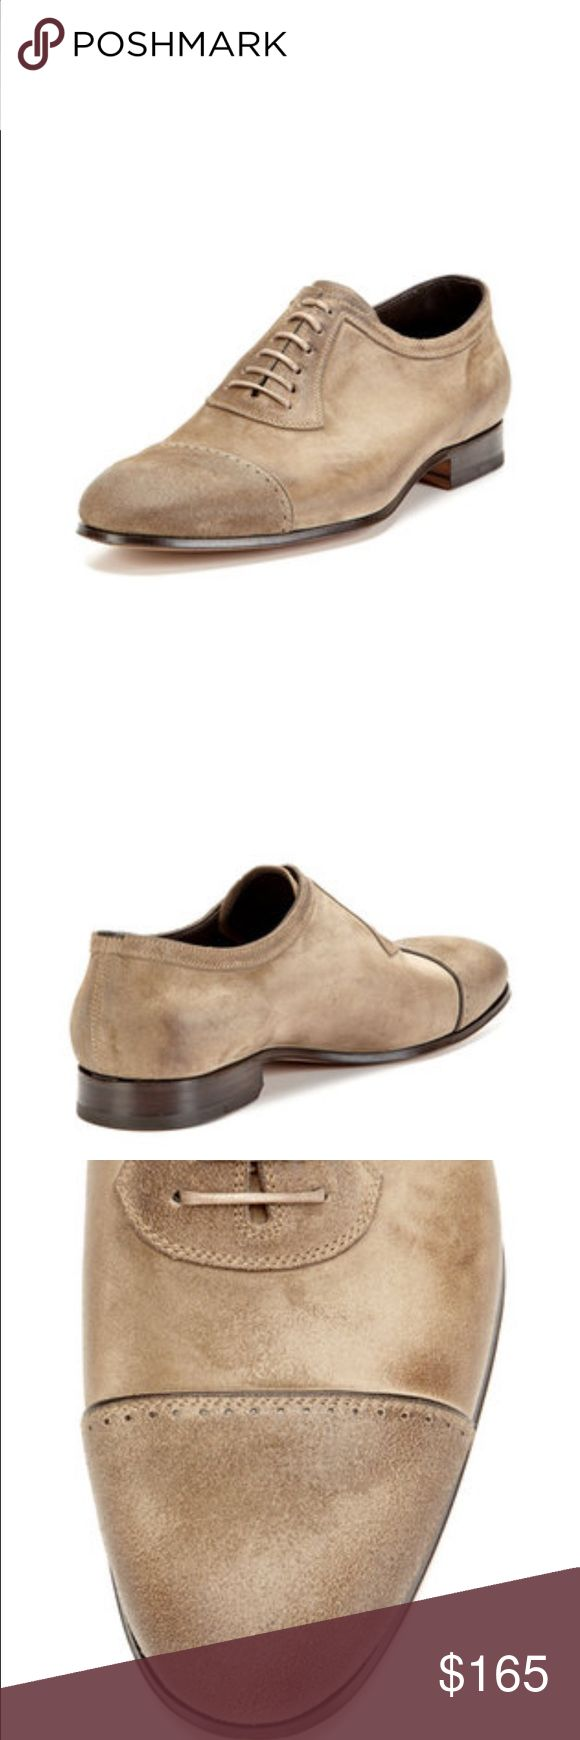 """n.d.c Oxford suede shoes Handmade suede oxfords, great condition, leather sole with a leather and rubber heel, heel 0.75"""", six eyelets, cord lacing, round cap toe. Made in Portugal n.d.c. Shoes Oxfords & Derbys"""